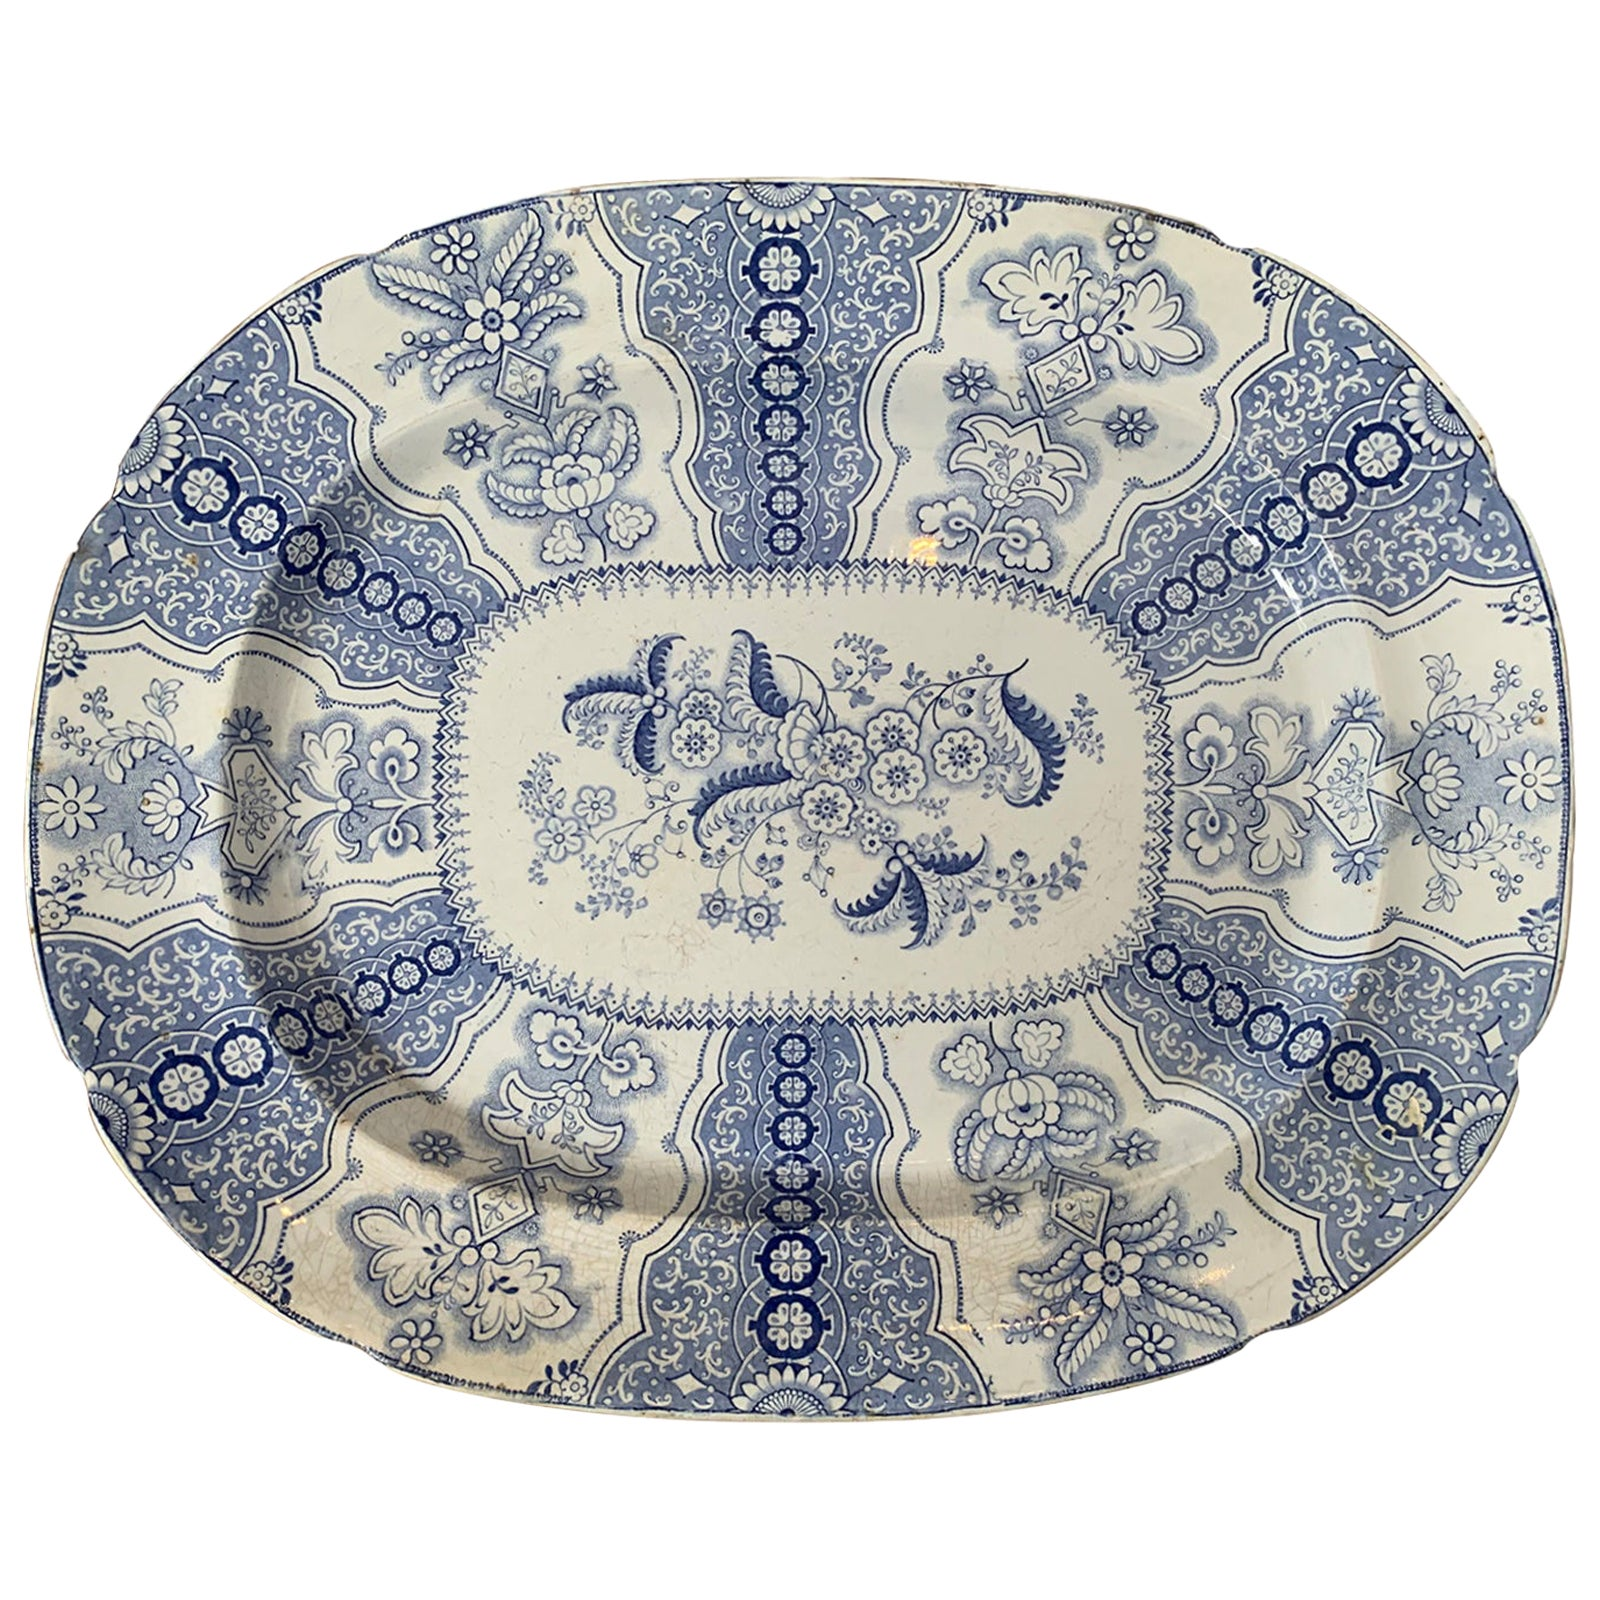 19th Century Staffordshire Transfer Granite Ware Blue and White Poonah J Charger